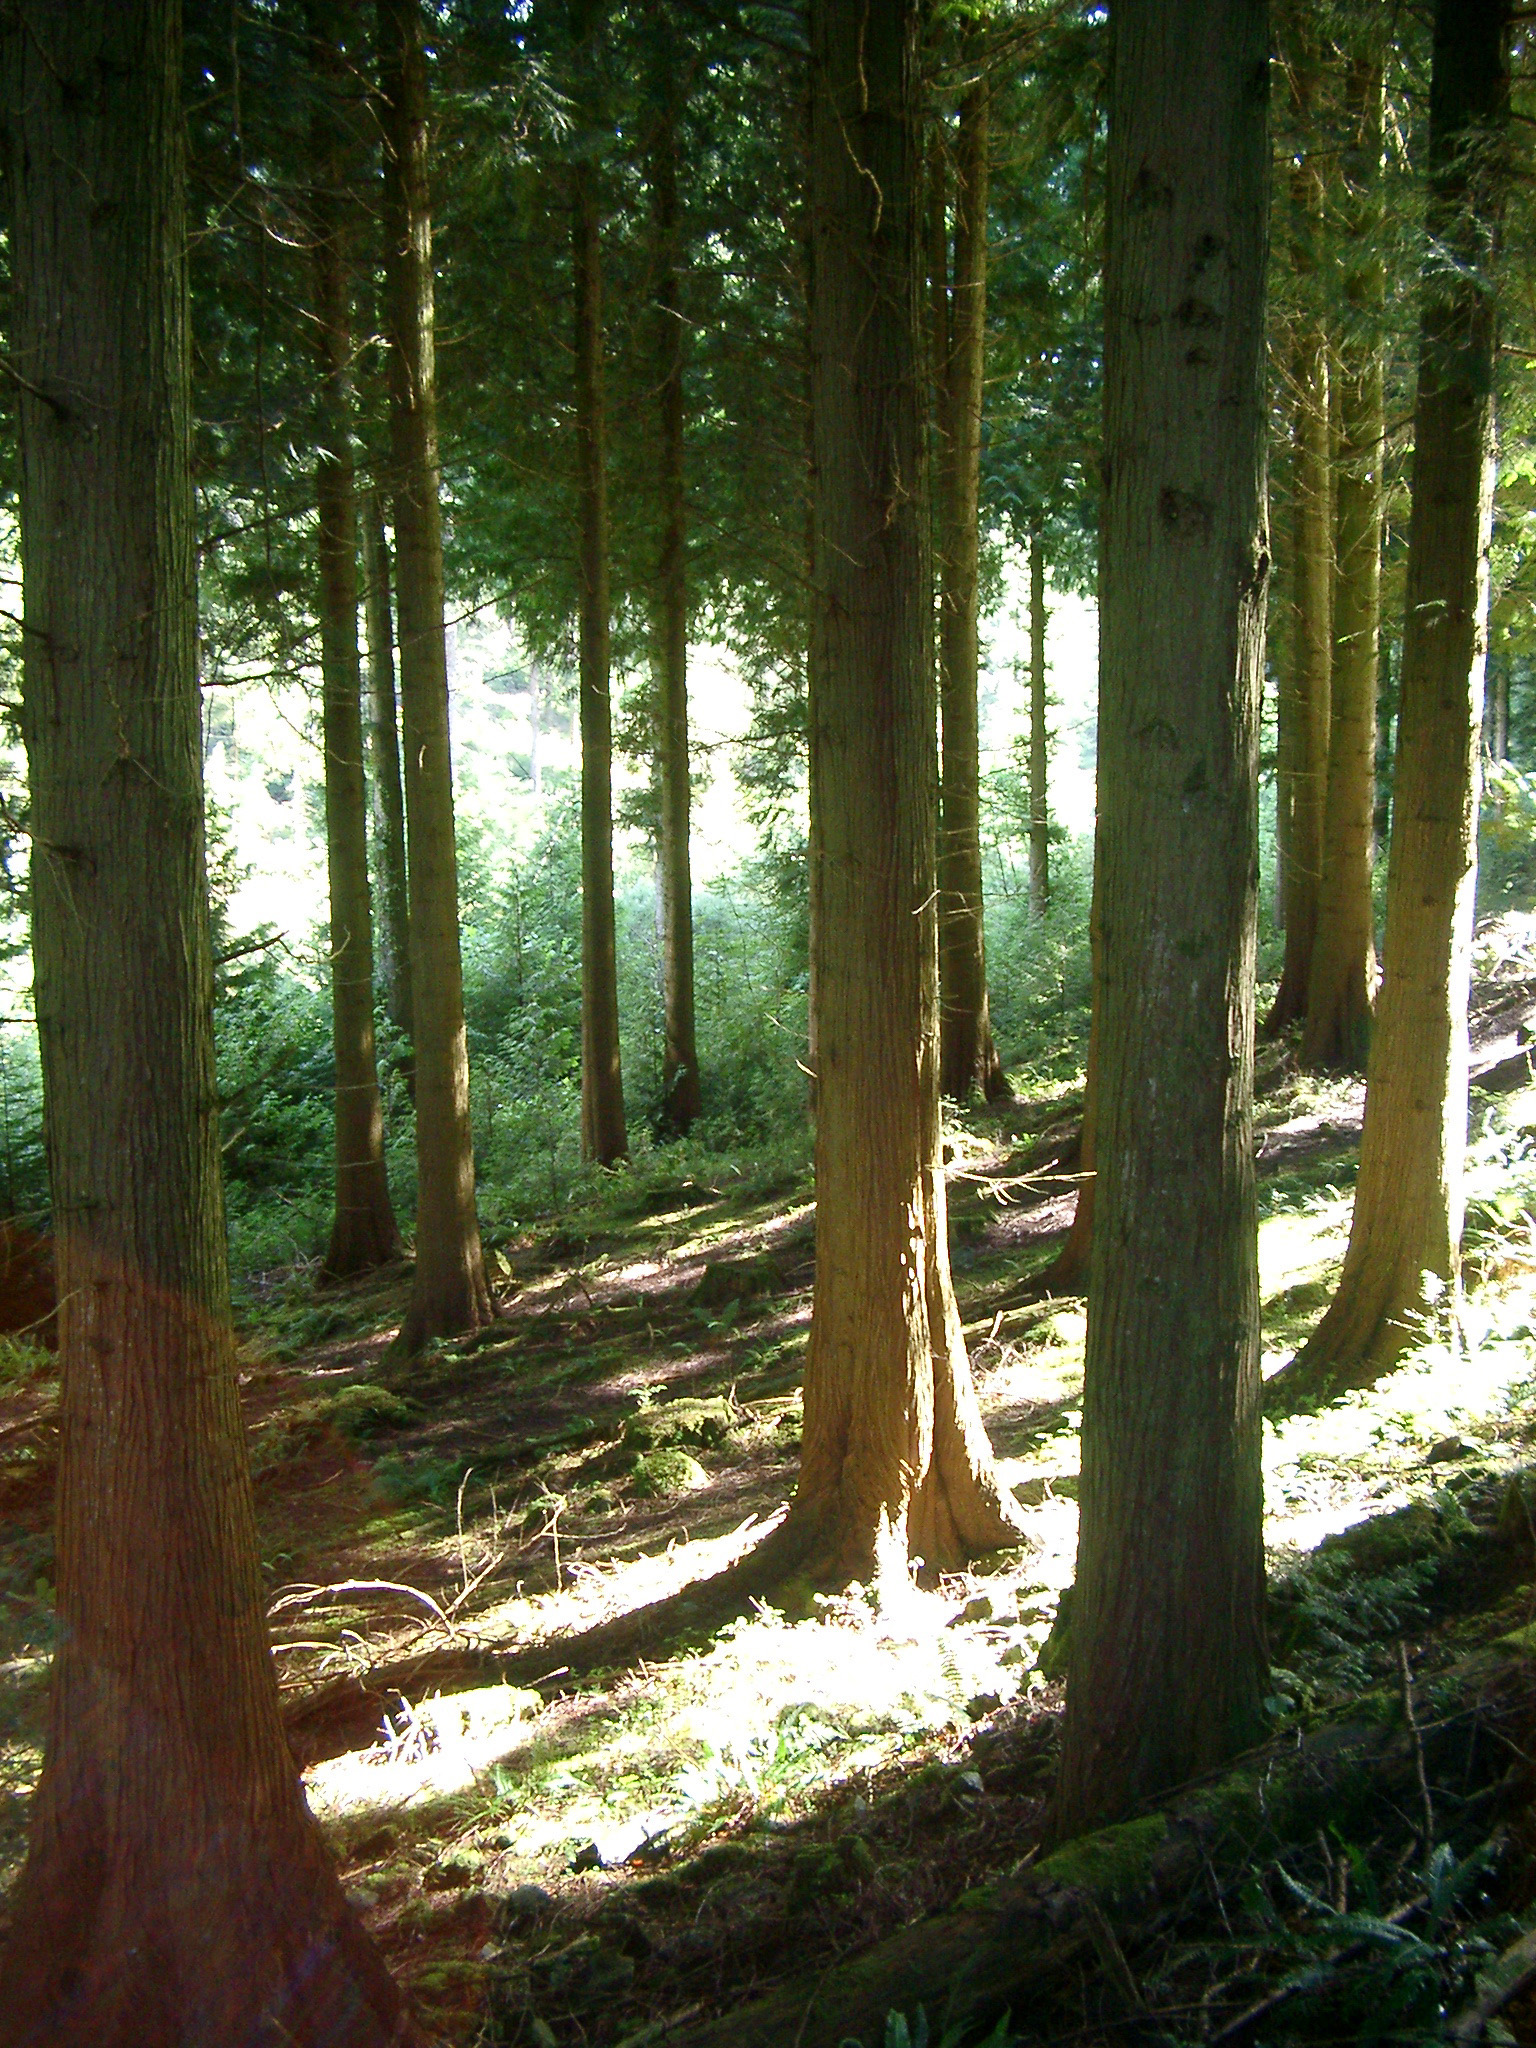 Tall Fir Trees on a Sloping hillside in the Forest. Captured on One Sunny Day.